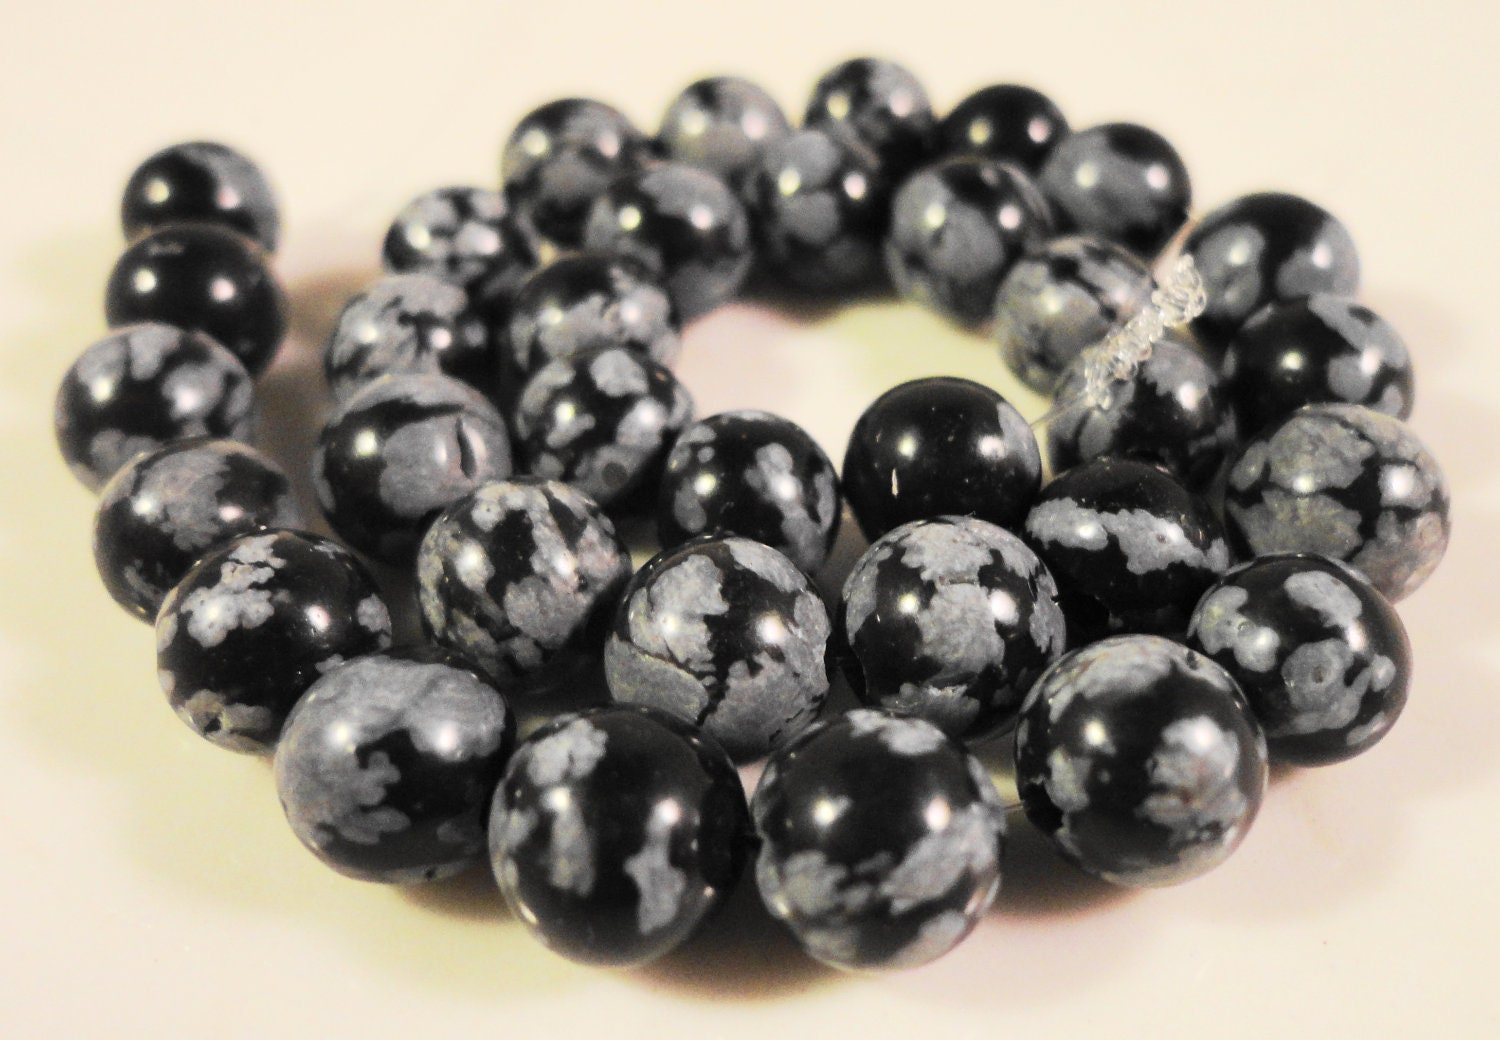 snowflake obsidian 6mm black and grey